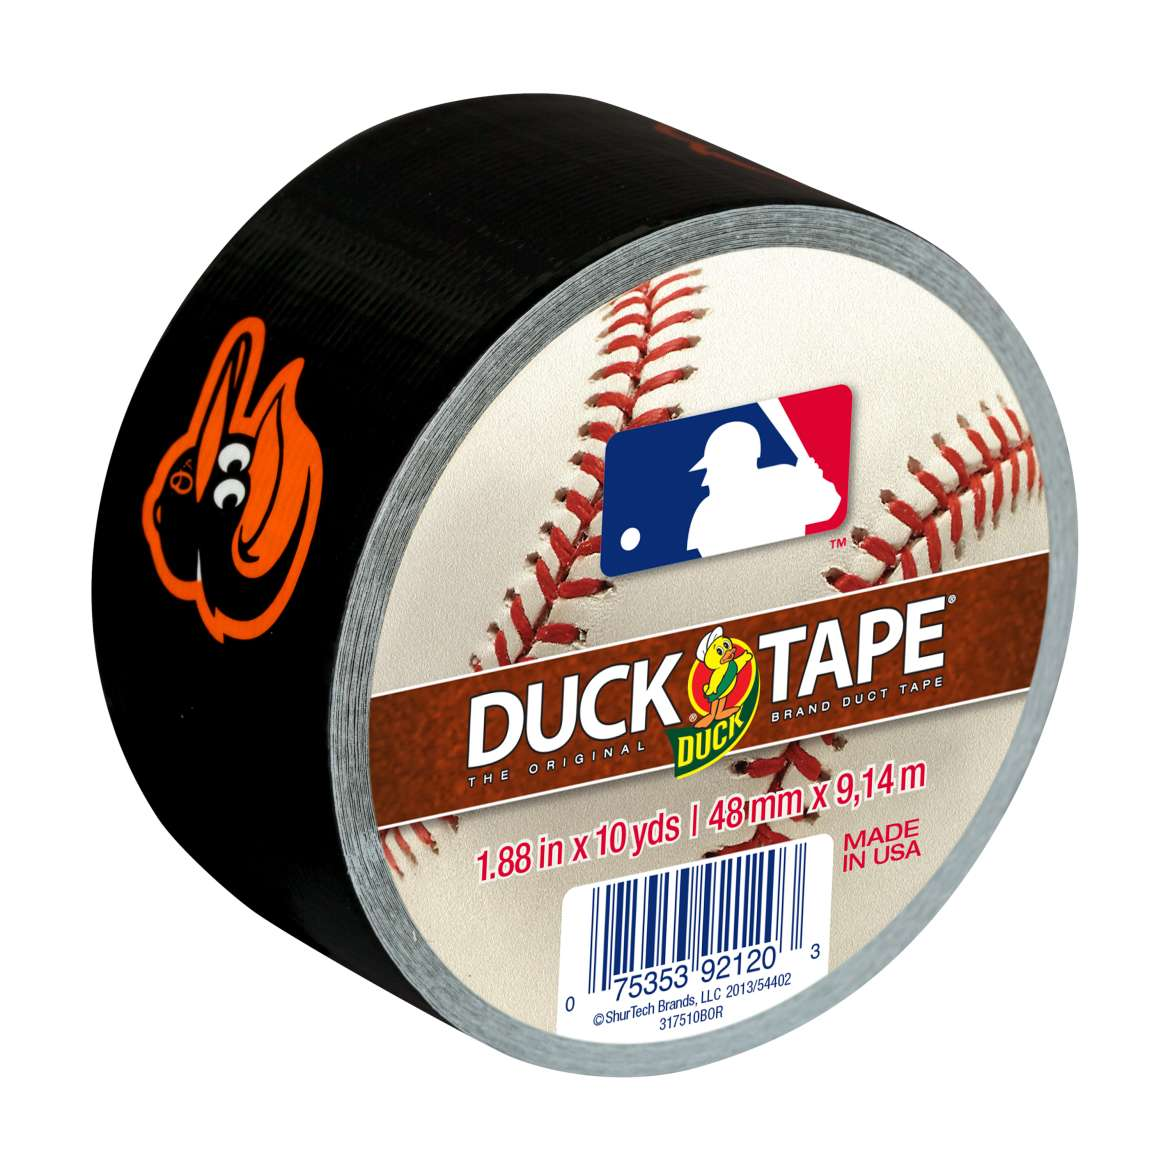 MLB Licensed Duck Tape Brand Duct Tape - Baltimore Orioles, 1.88 in. x 10 yd.